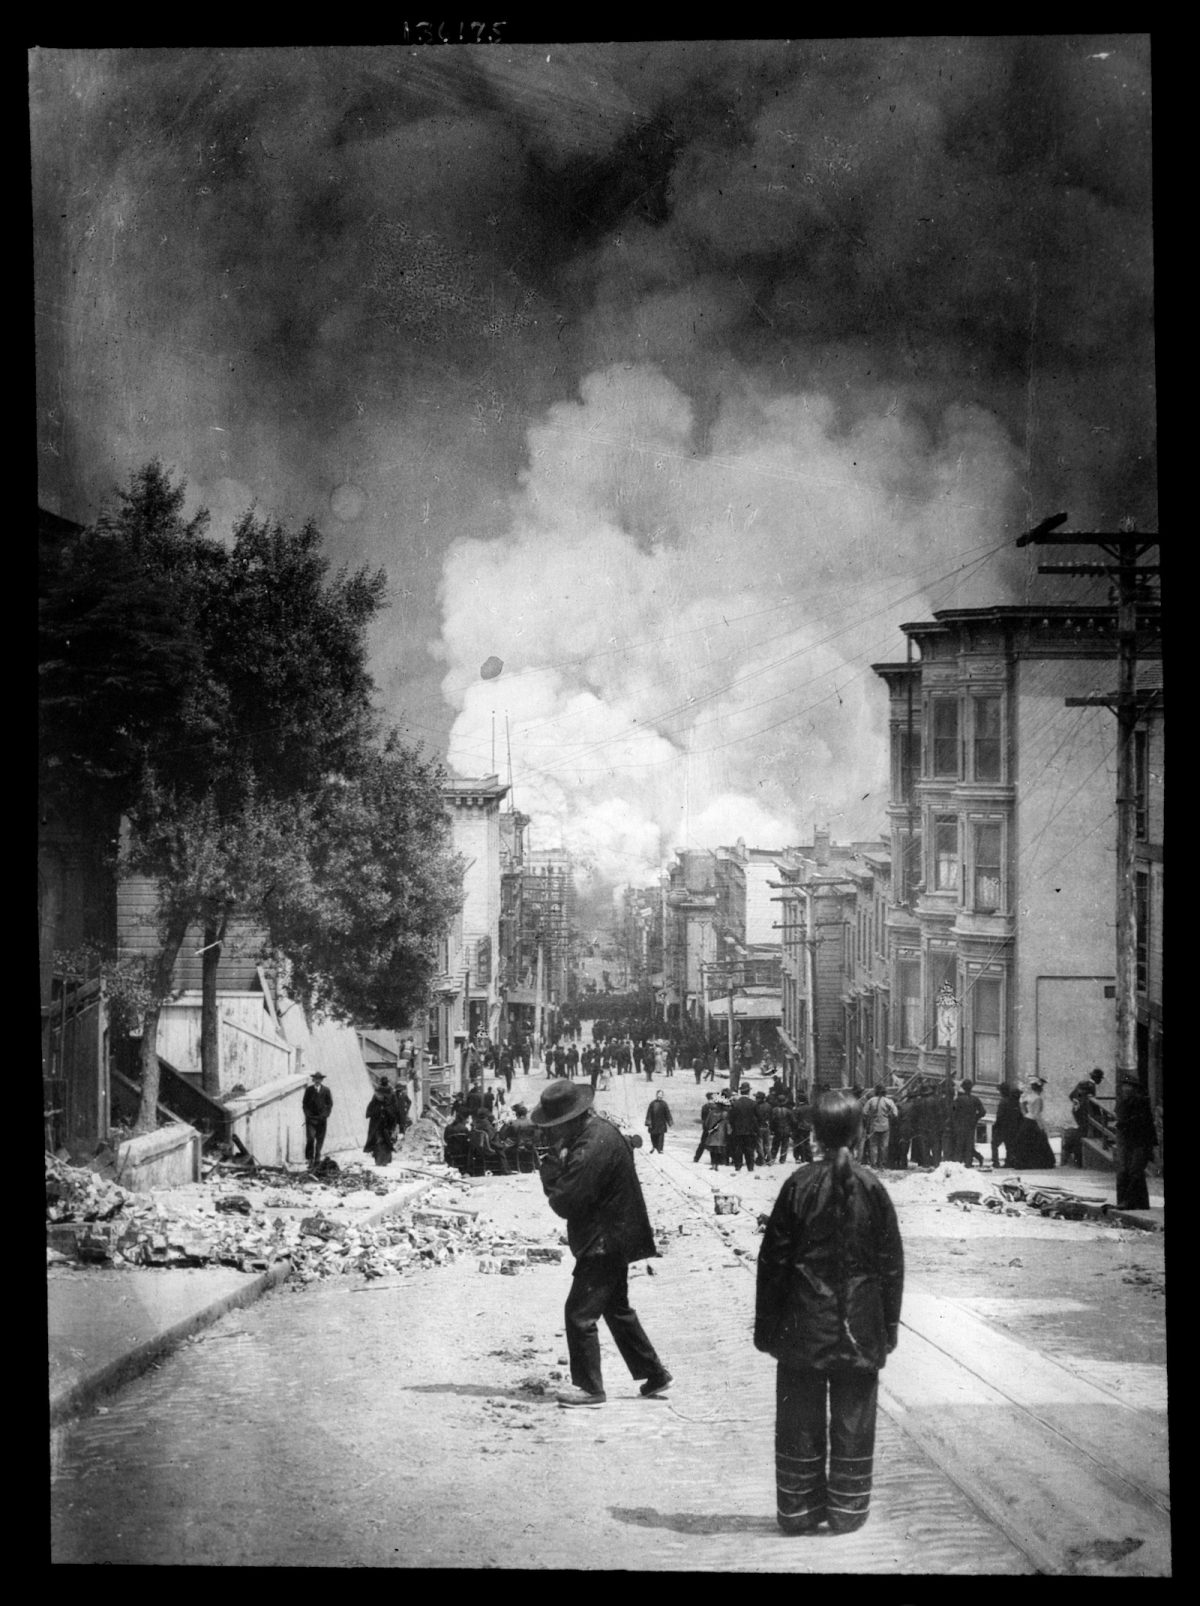 Arnold Genthe, photography, San Francisco, earthquake, 1906